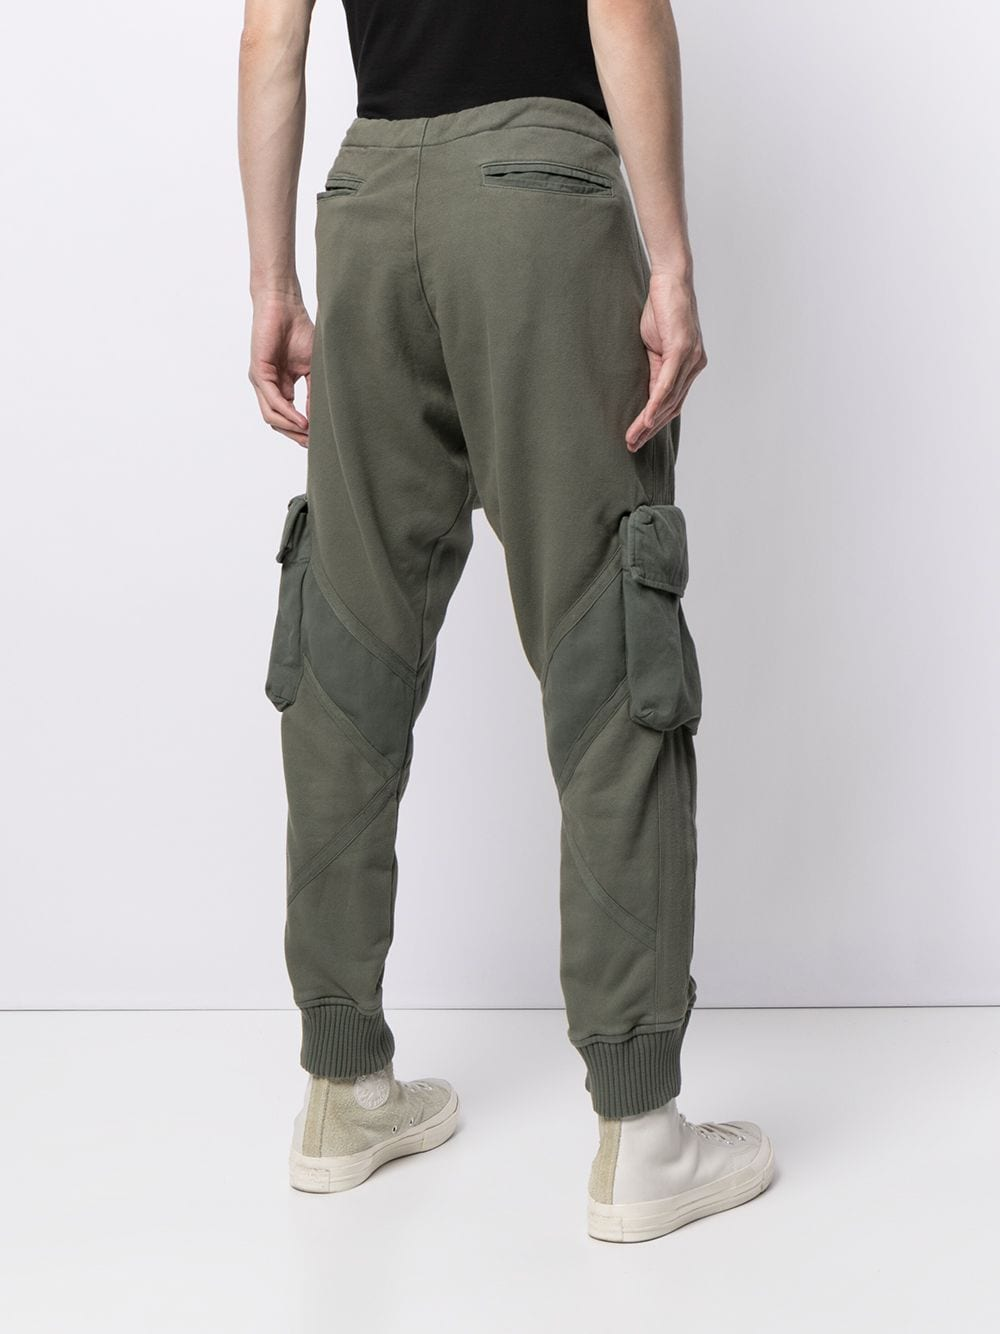 GREG LAUREN MEN UTILITY SWEATPANTS